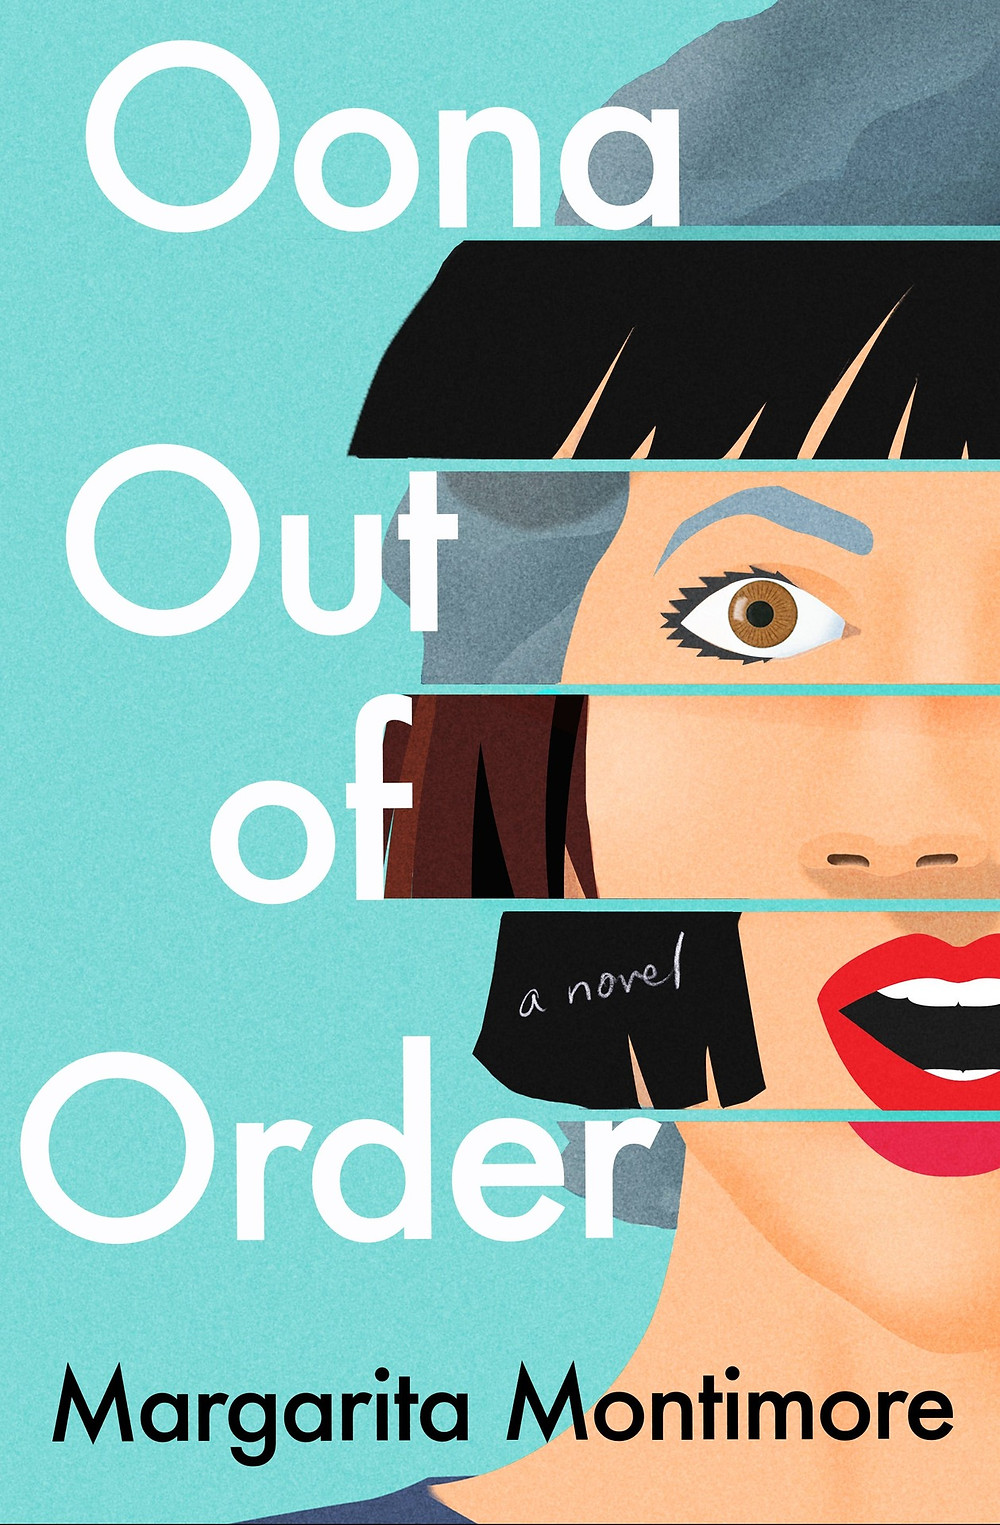 Oona Out of Order Margarita Montimore thebookslut book reviews the bookslut